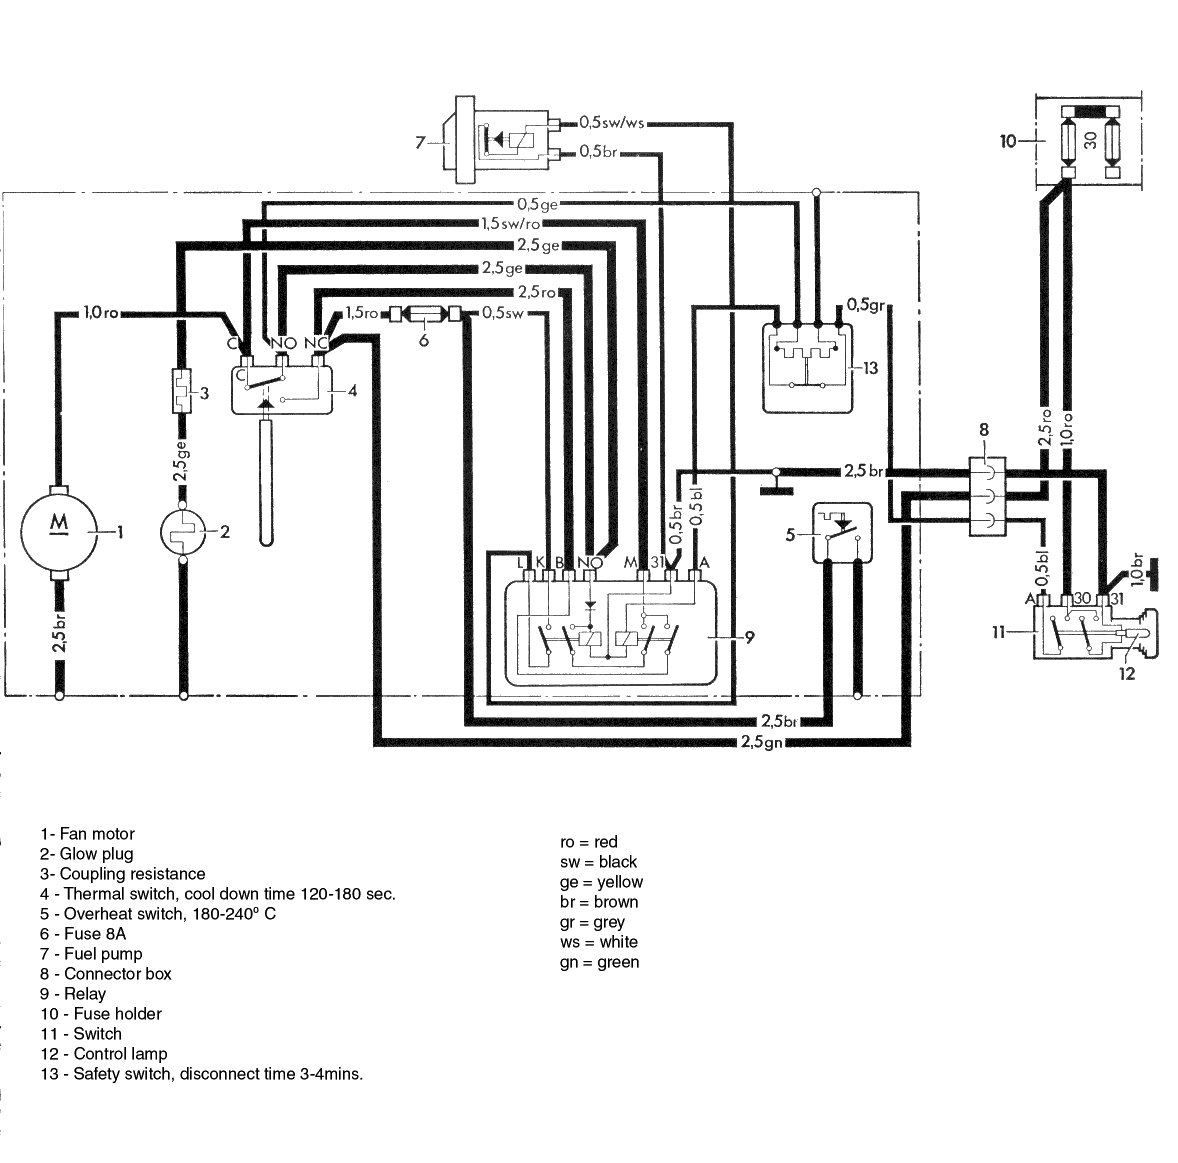 BN2_wiring eberspacher wiring diagram eberspacher 701 wiring diagram at gsmportal.co